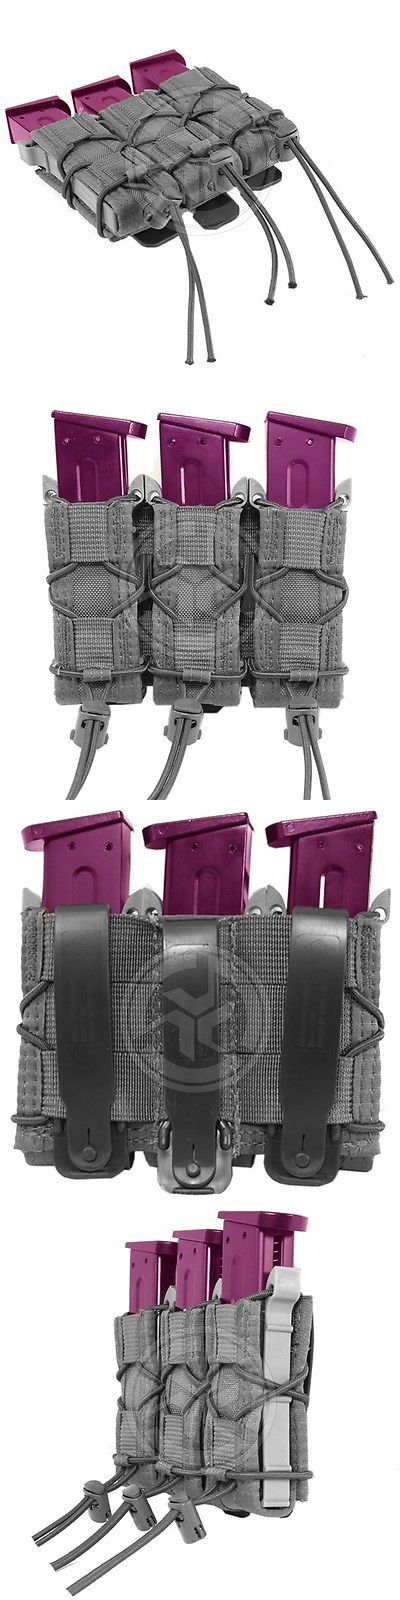 Tactical Molle Pouches 177900: Hsg High Speed Gear Triple Pistol Magazine Taco Molle Military Pouch Wolf Gray -> BUY IT NOW ONLY: $75 on eBay!